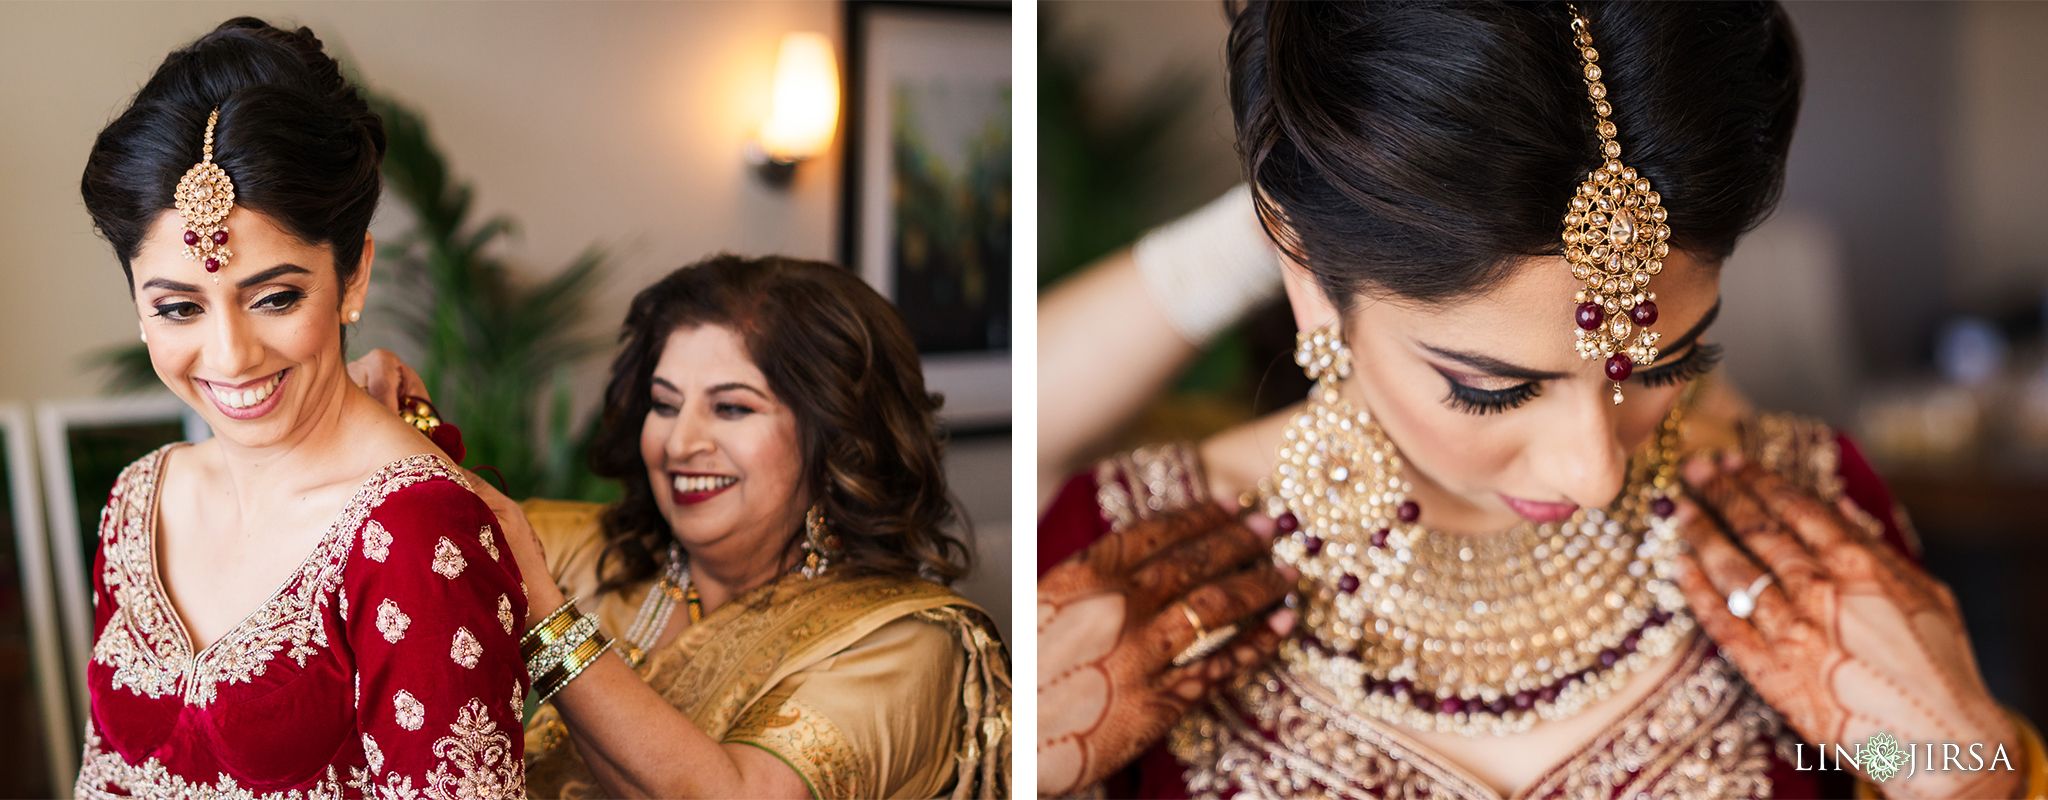 Newport Beach Marriott Hindu Ceremony | Aniva & Tony